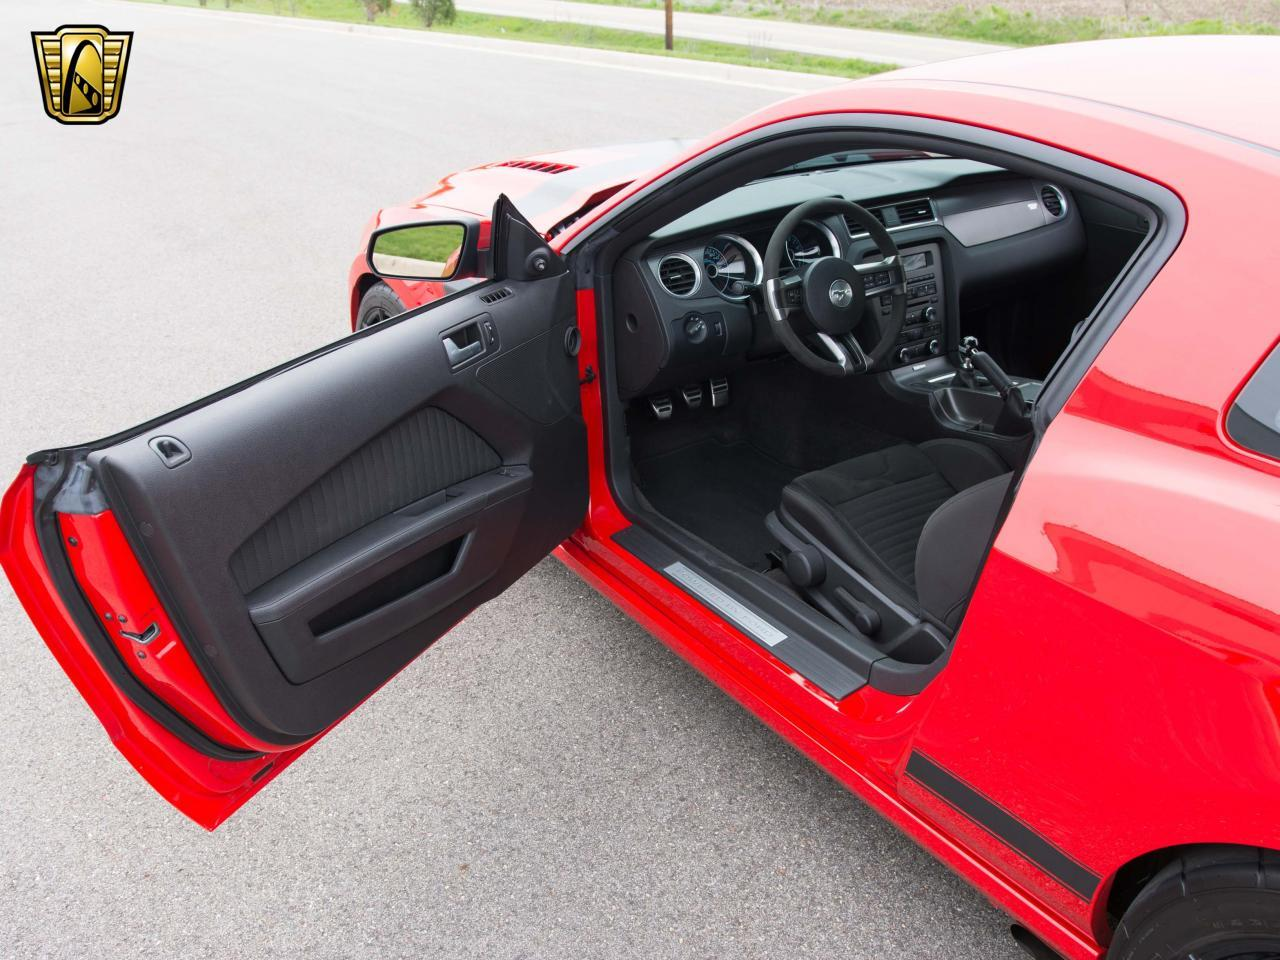 Large Picture of 2013 Mustang located in Kenosha Wisconsin - $49,995.00 Offered by Gateway Classic Cars - Milwaukee - L1AH